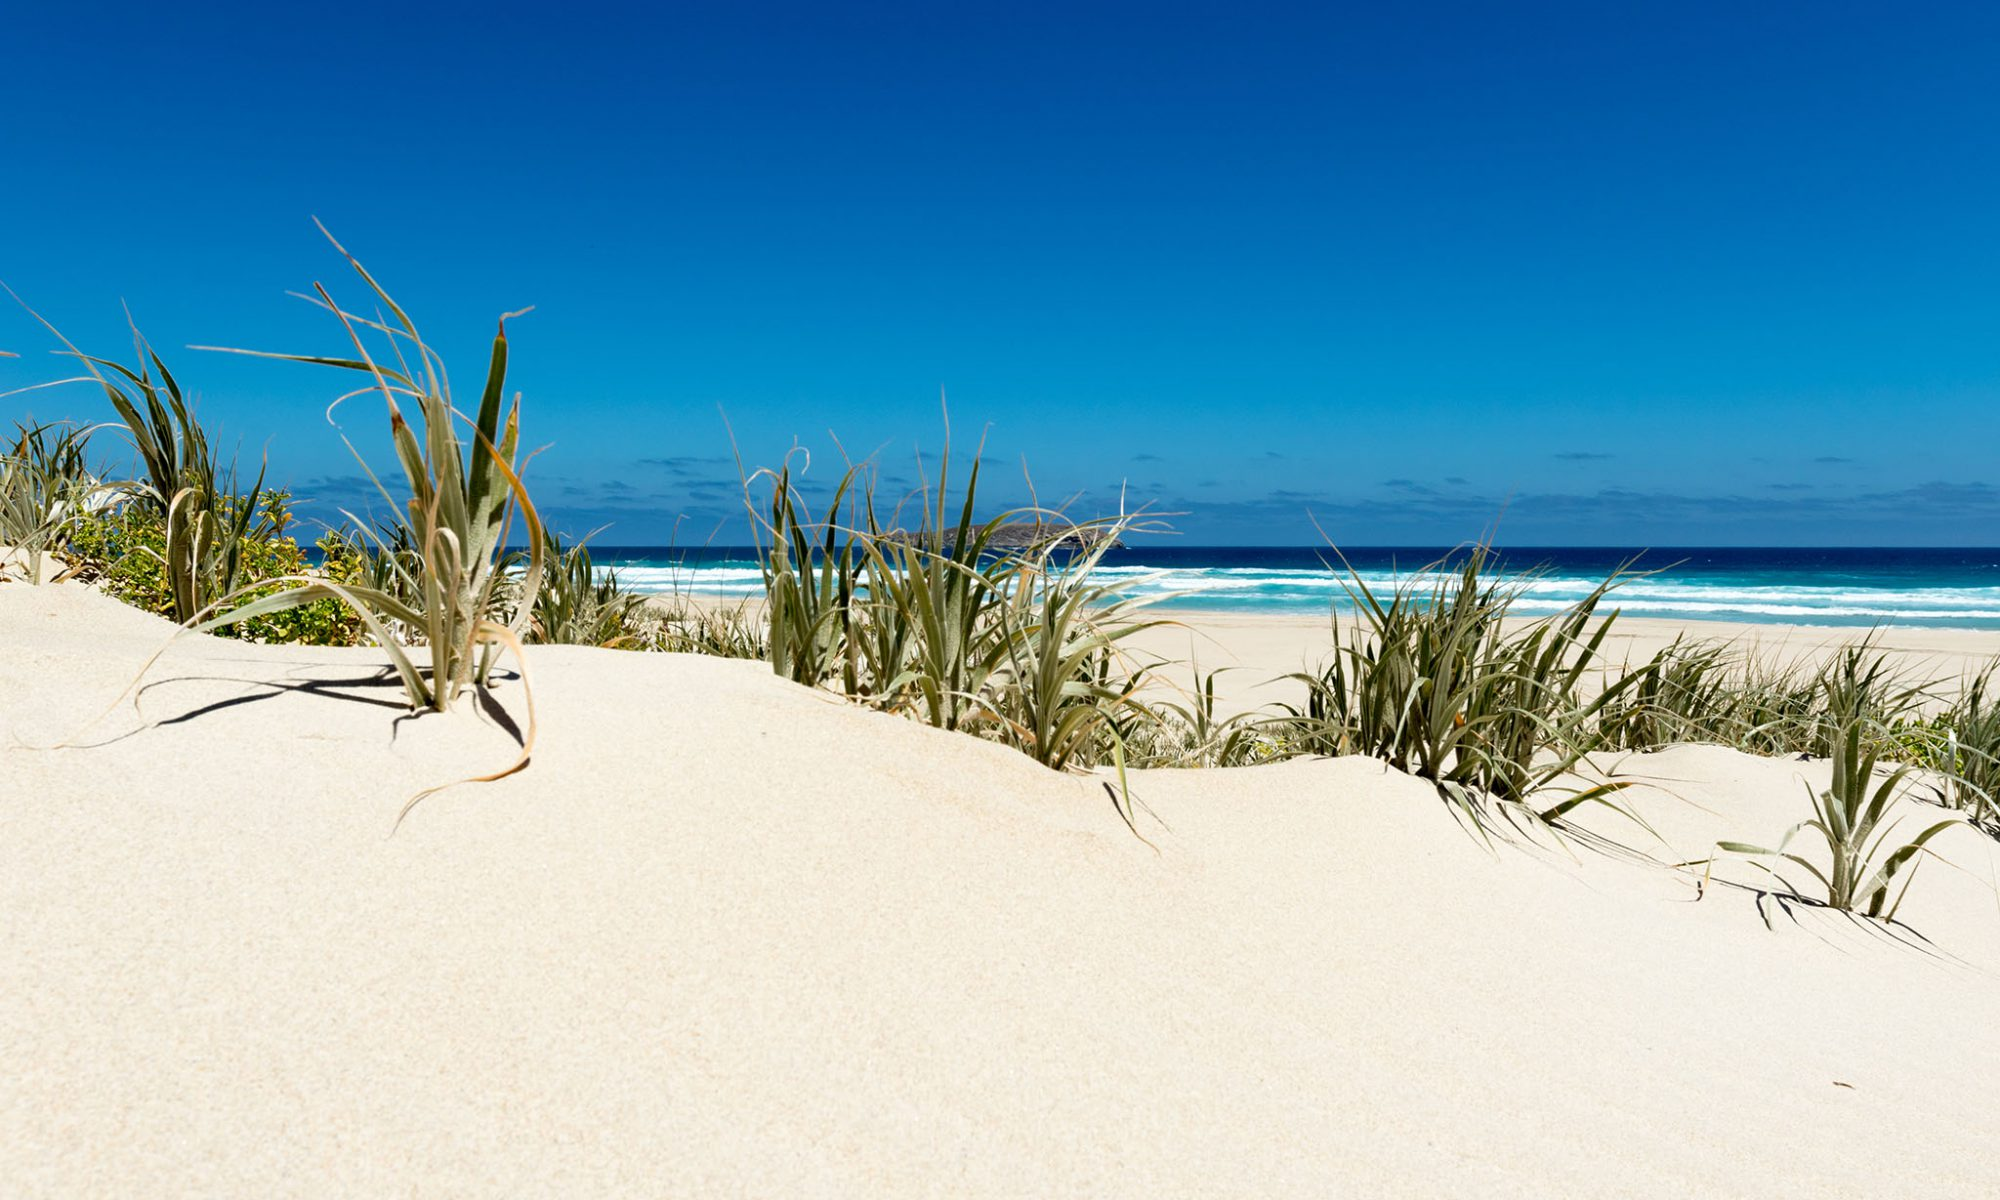 photo with beautiful blue sky and white sand at Reef Beach, Bremer Bay, by Caro Telfer.